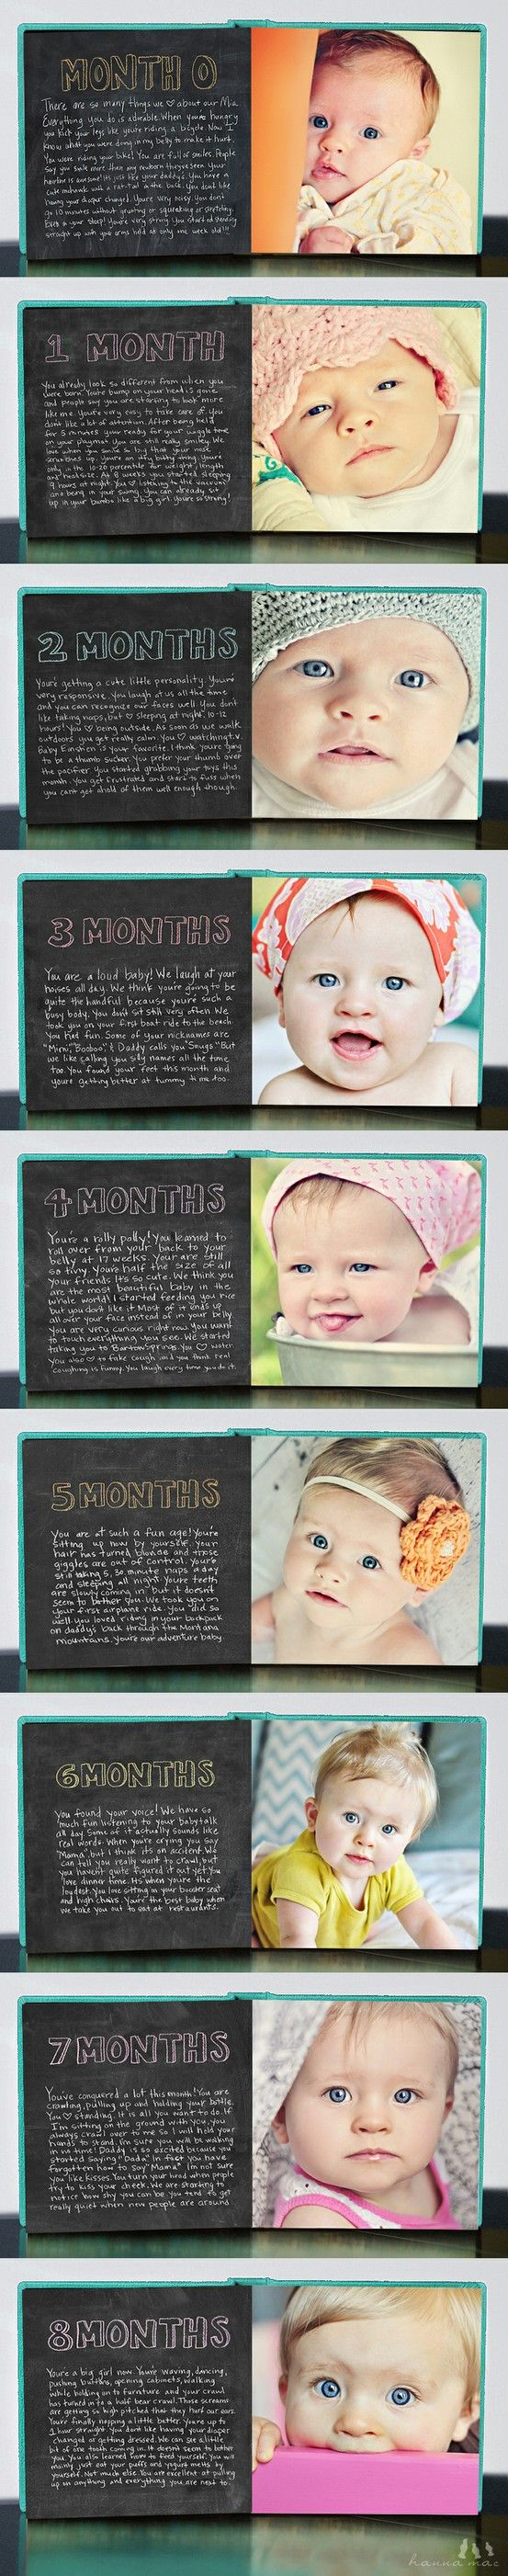 Great documentation for an infant in child care as well!. Could do monthly evaluation on developmental goals reached each month